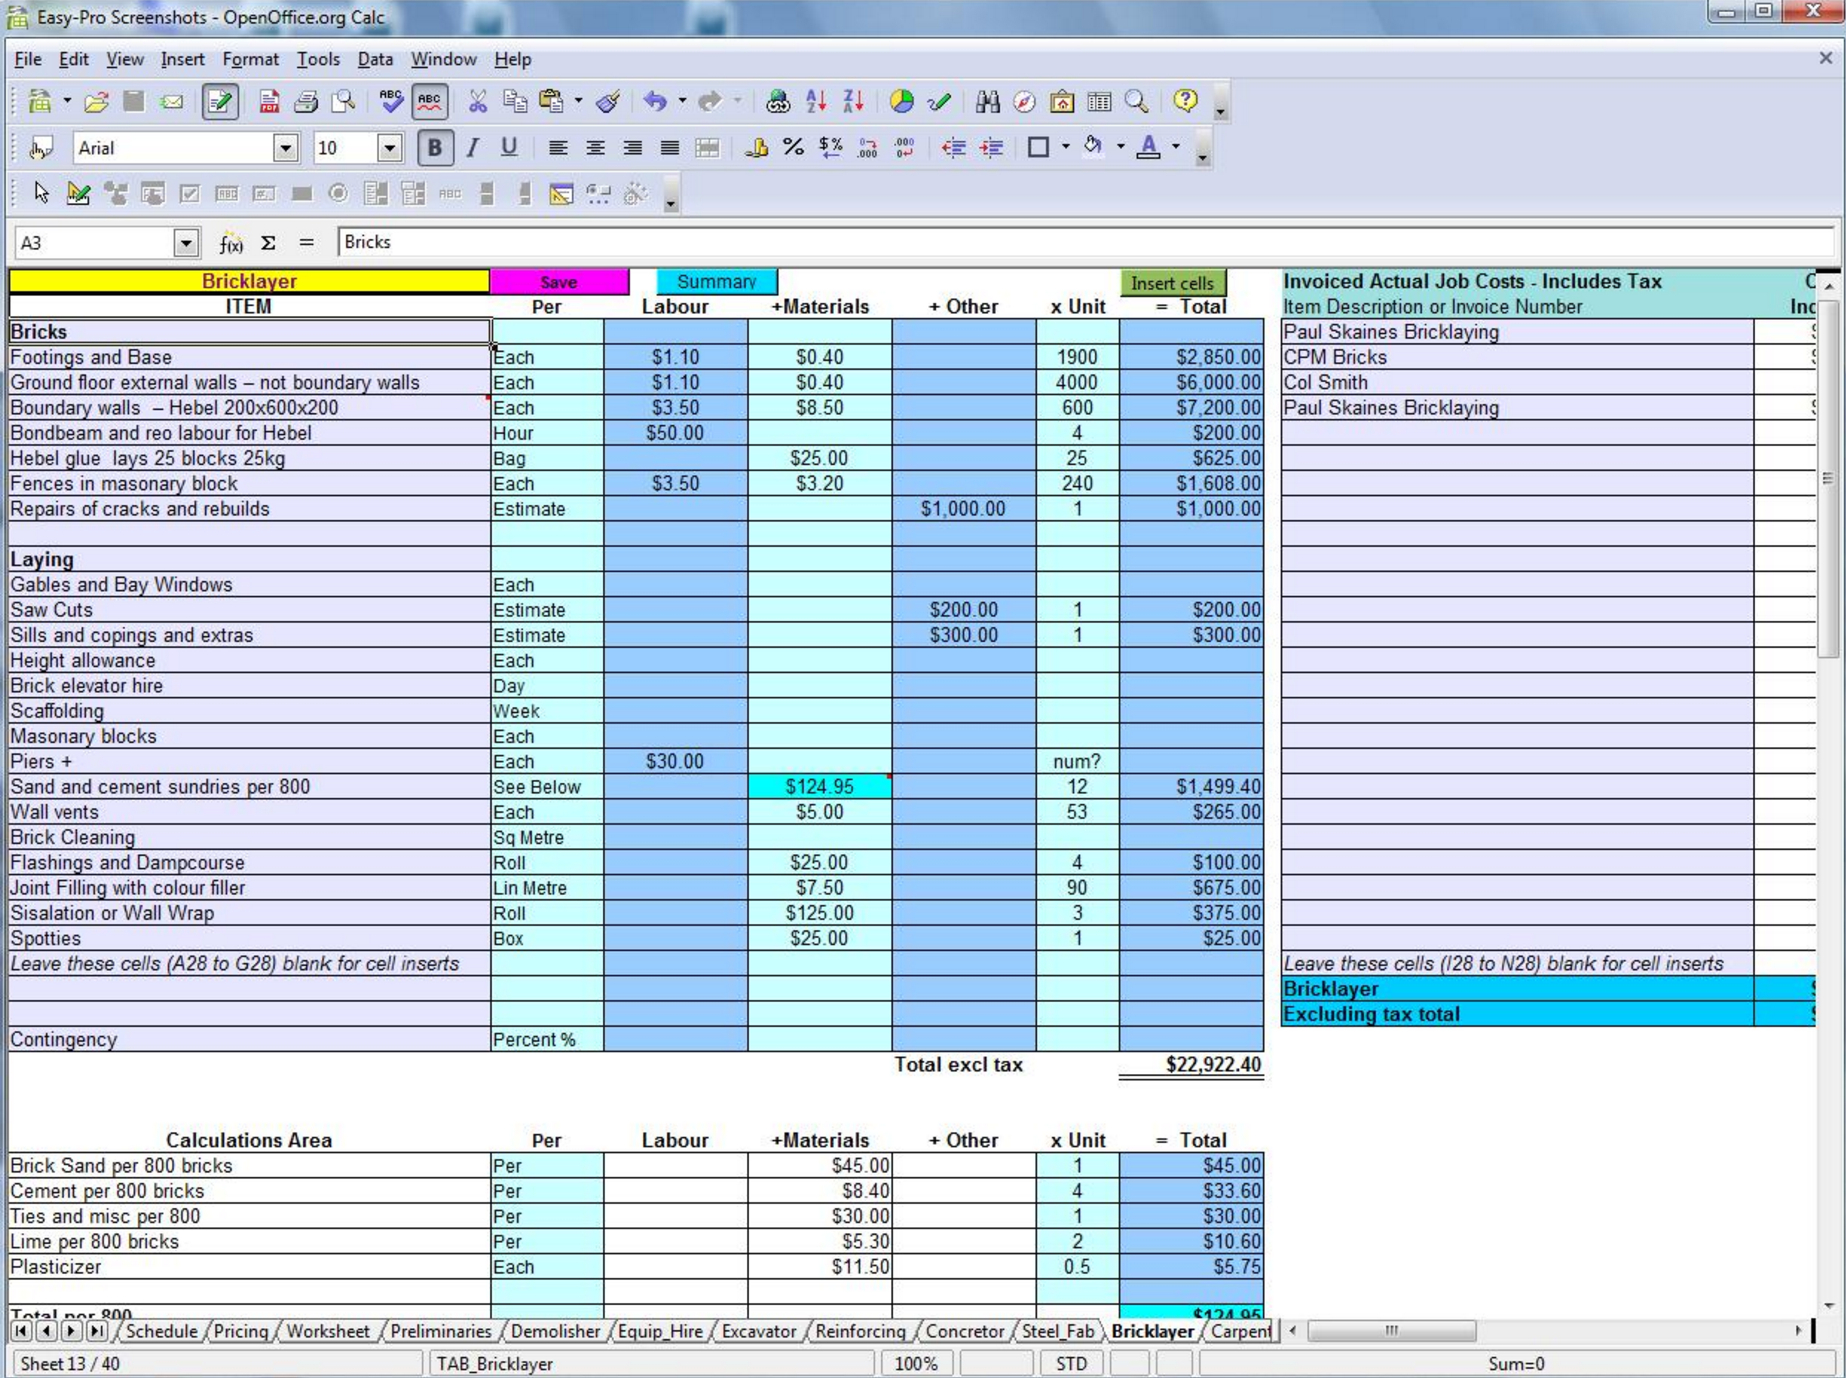 Cabinet Door Calculator Spreadsheet Free With Regard To 5 Free Construction Estimating  Takeoff Products Perfect For Smbs